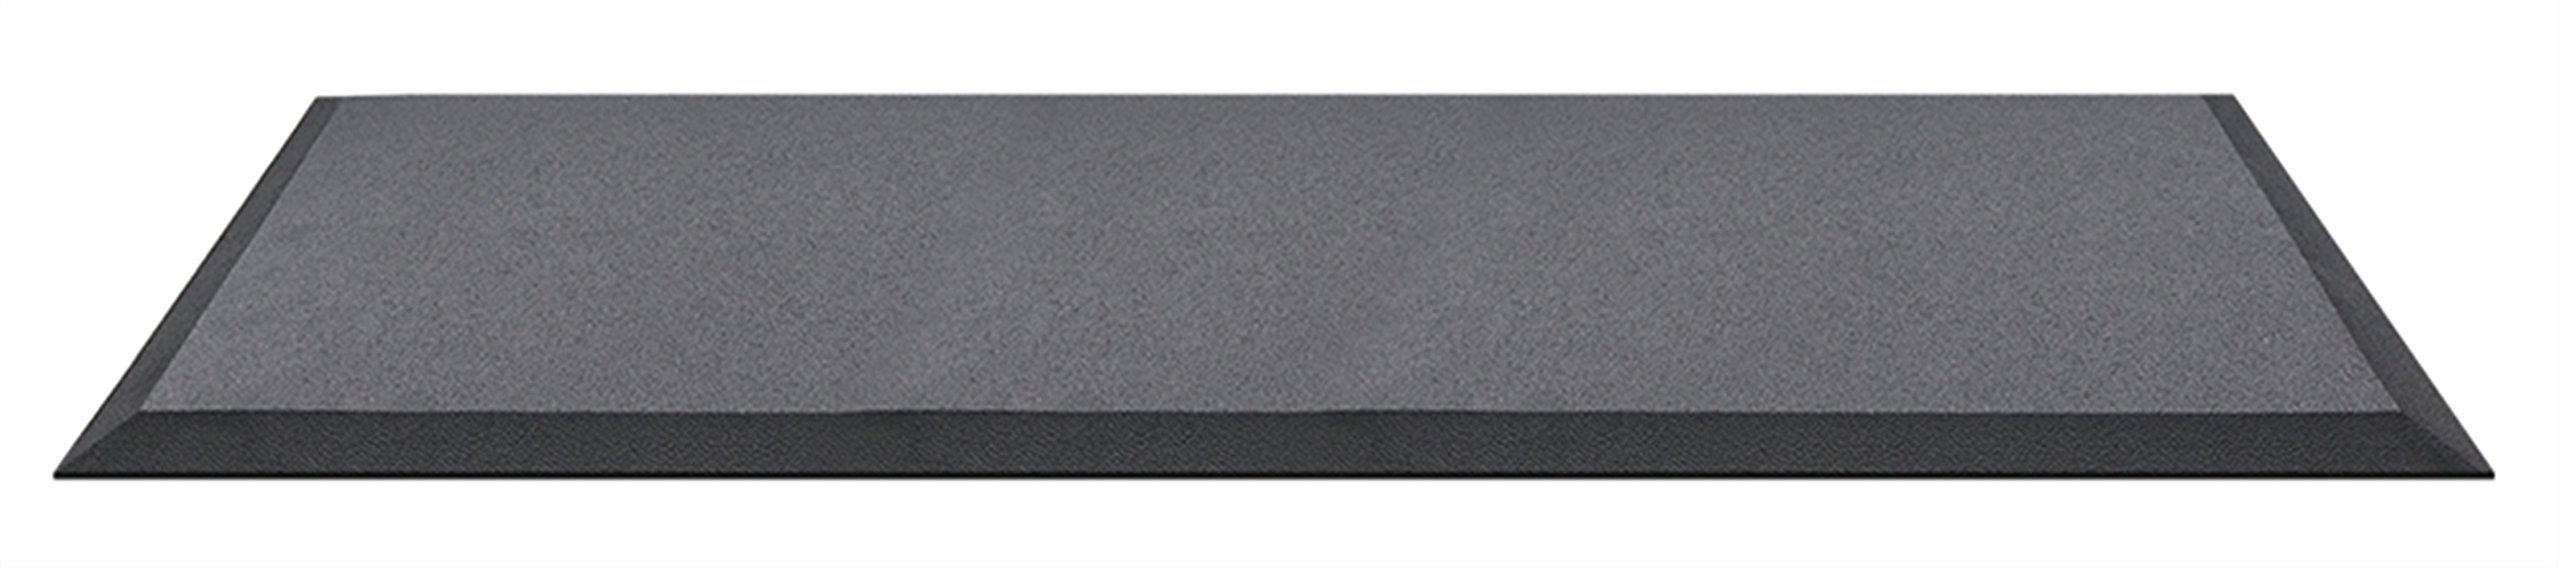 Anti Fatigue Mat, Black - Standing Desk Mats, Commercial Grade Anti-fatigue Comfort Kitchen Floor Mats perfect for Standup Desks, Kitchens, and Garages (24''x72'') by Pashley